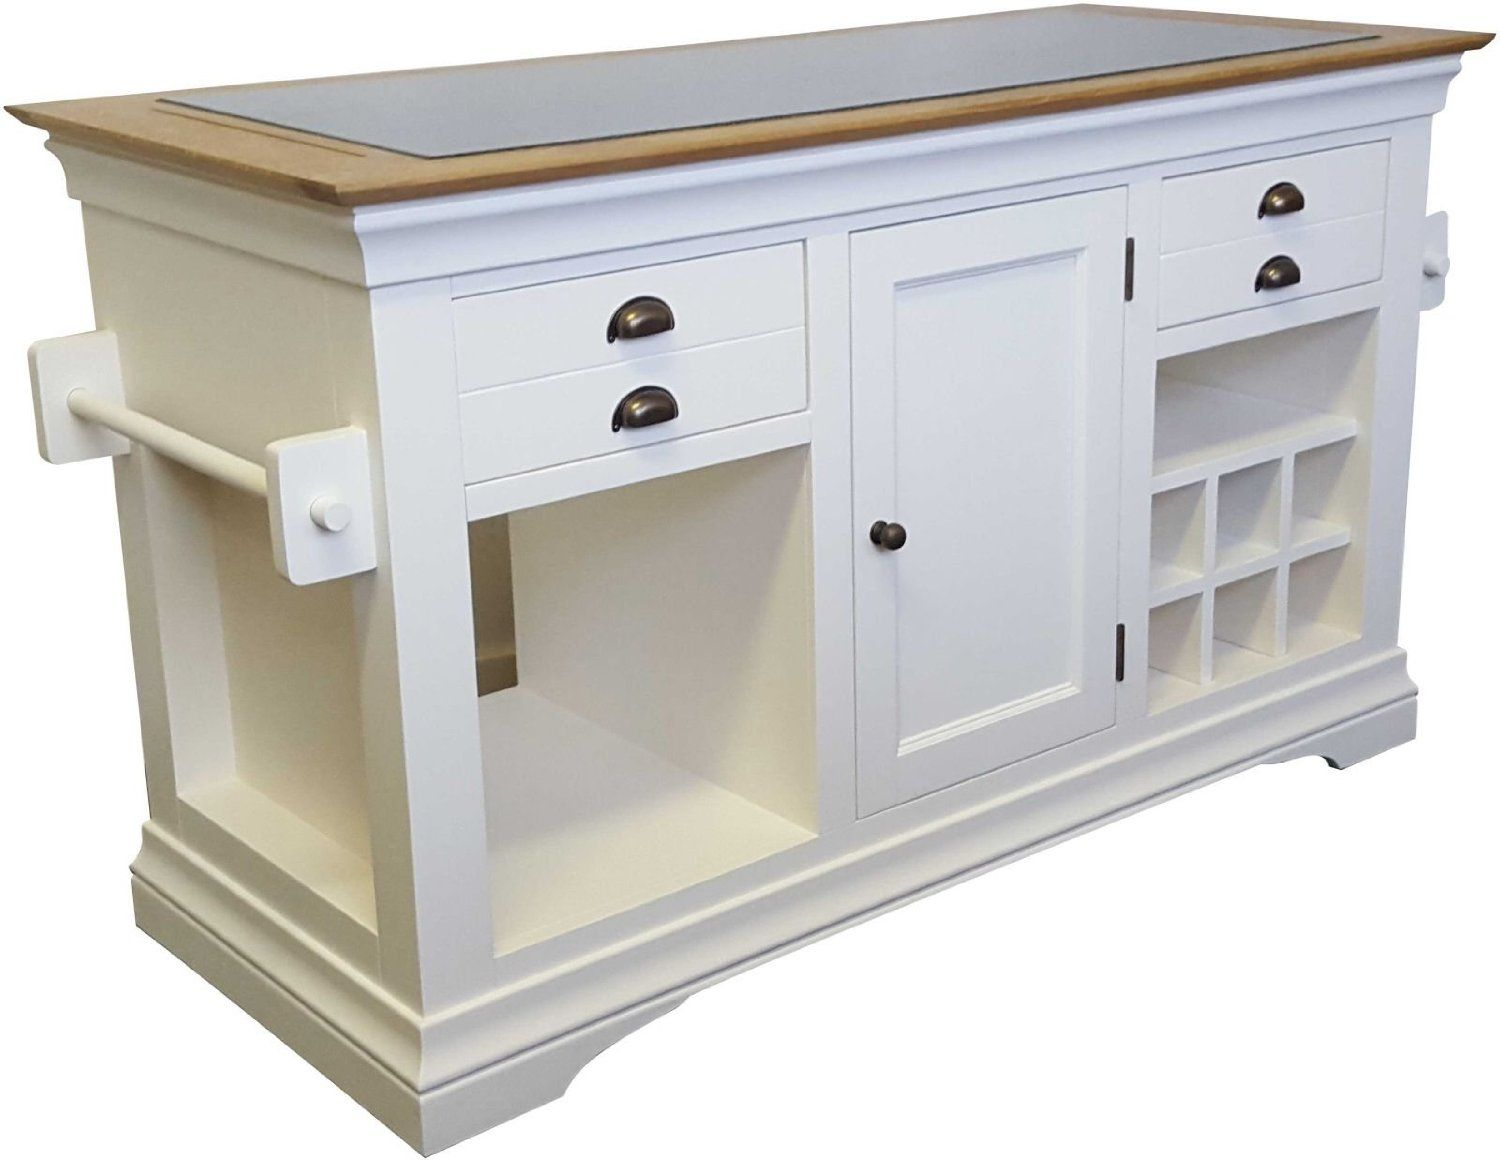 Dijon cream painted furniture large granite top kitchen island unit worktop amazon co uk kitchen home